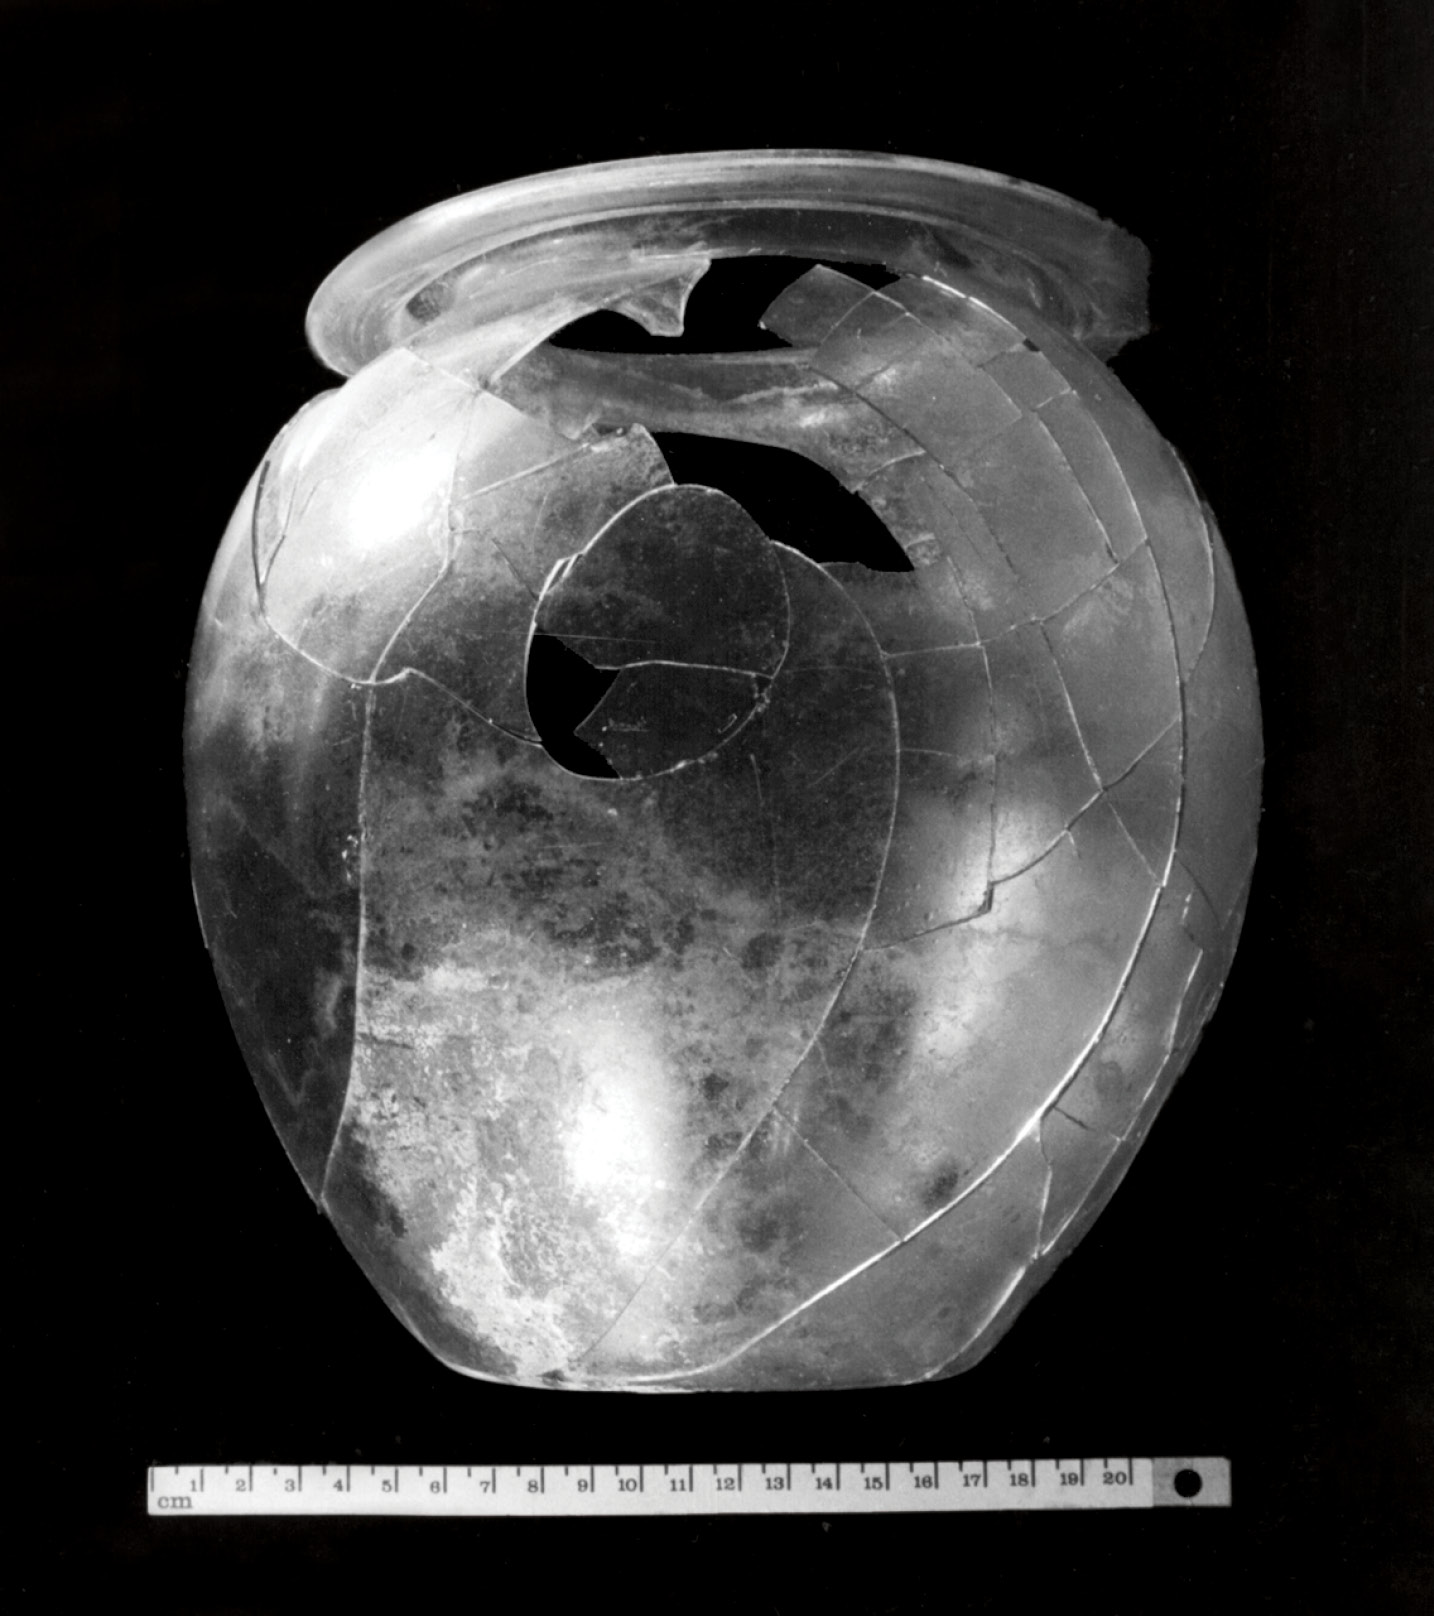 ABOVE A rare example in Ireland of a Romano-British cremation jar, found at Stoneyford, Co. Kildare, in 1852. The jar contained cremated bone and a small glass lachrymatory (a bottle for holding the tears of the mourners). It was covered by a bronze mirror. The burial site, above a navigable river leading to the sea at Waterford, suggests that the deceased was involved in trade with Roman Britain.